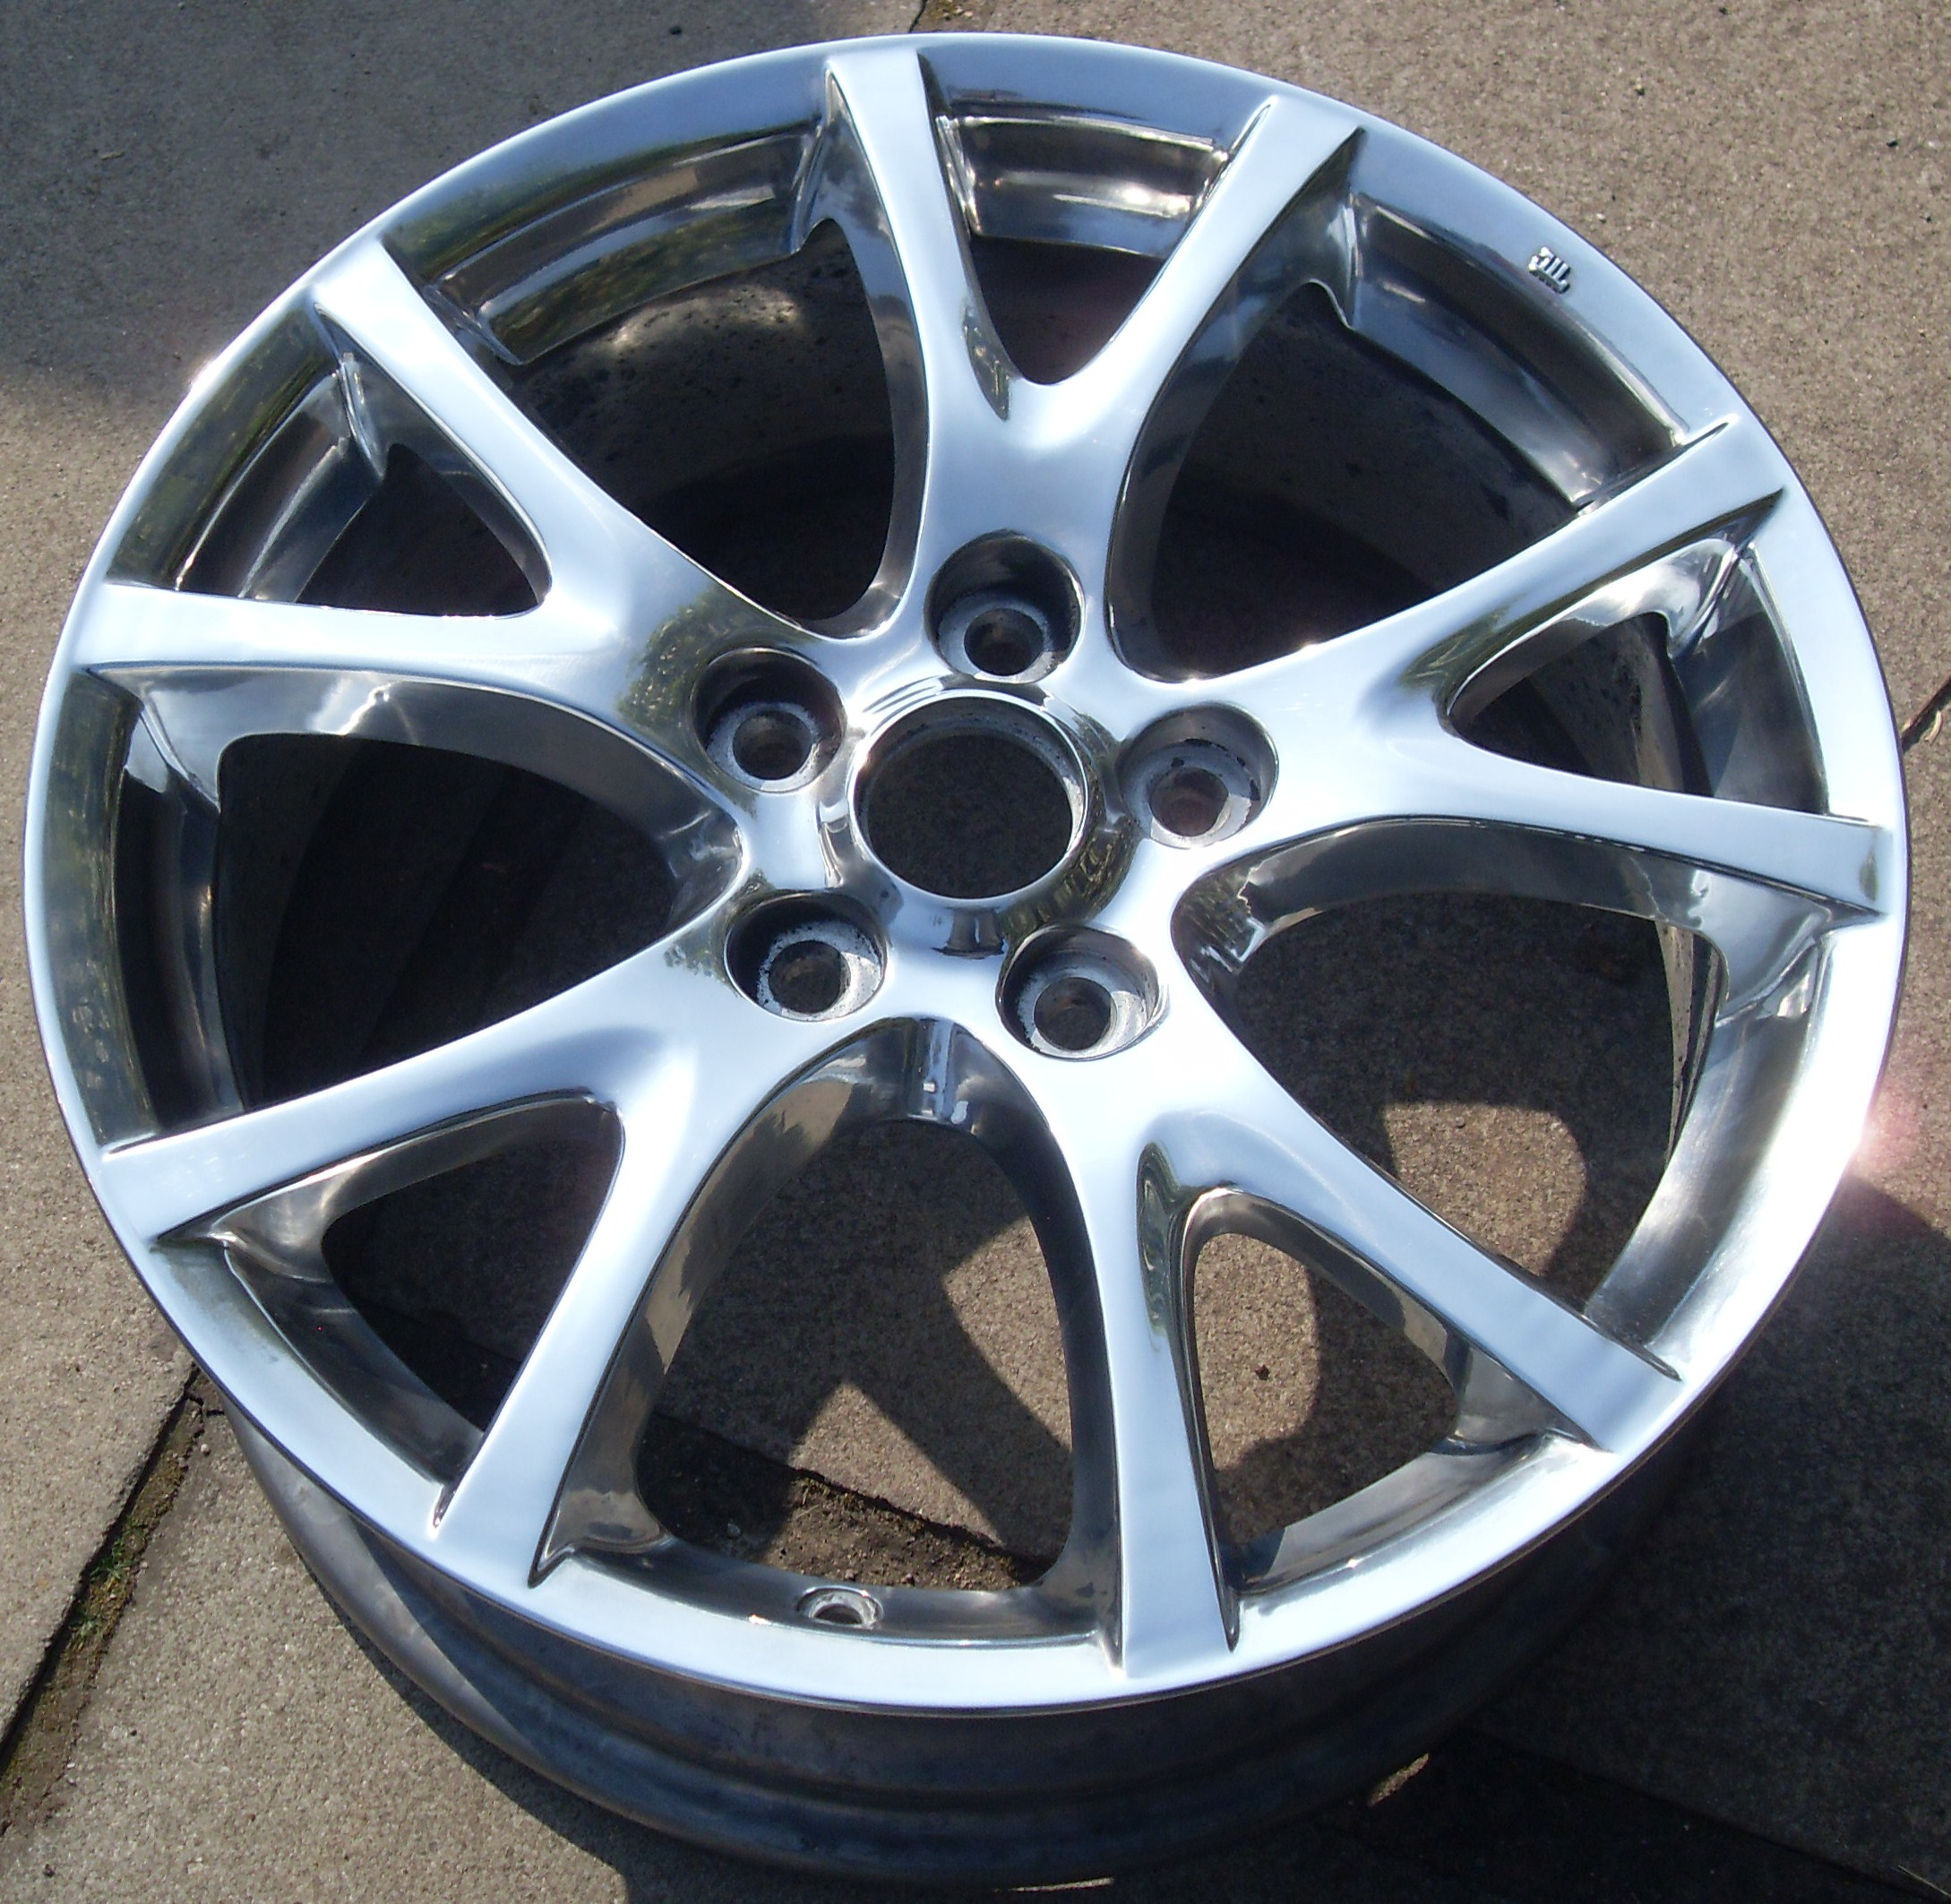 rims eu all forum are fender with close if gallery that in to tires pics this allowed more suspension et combination img edges available after wheels including is and max offset market mazda the